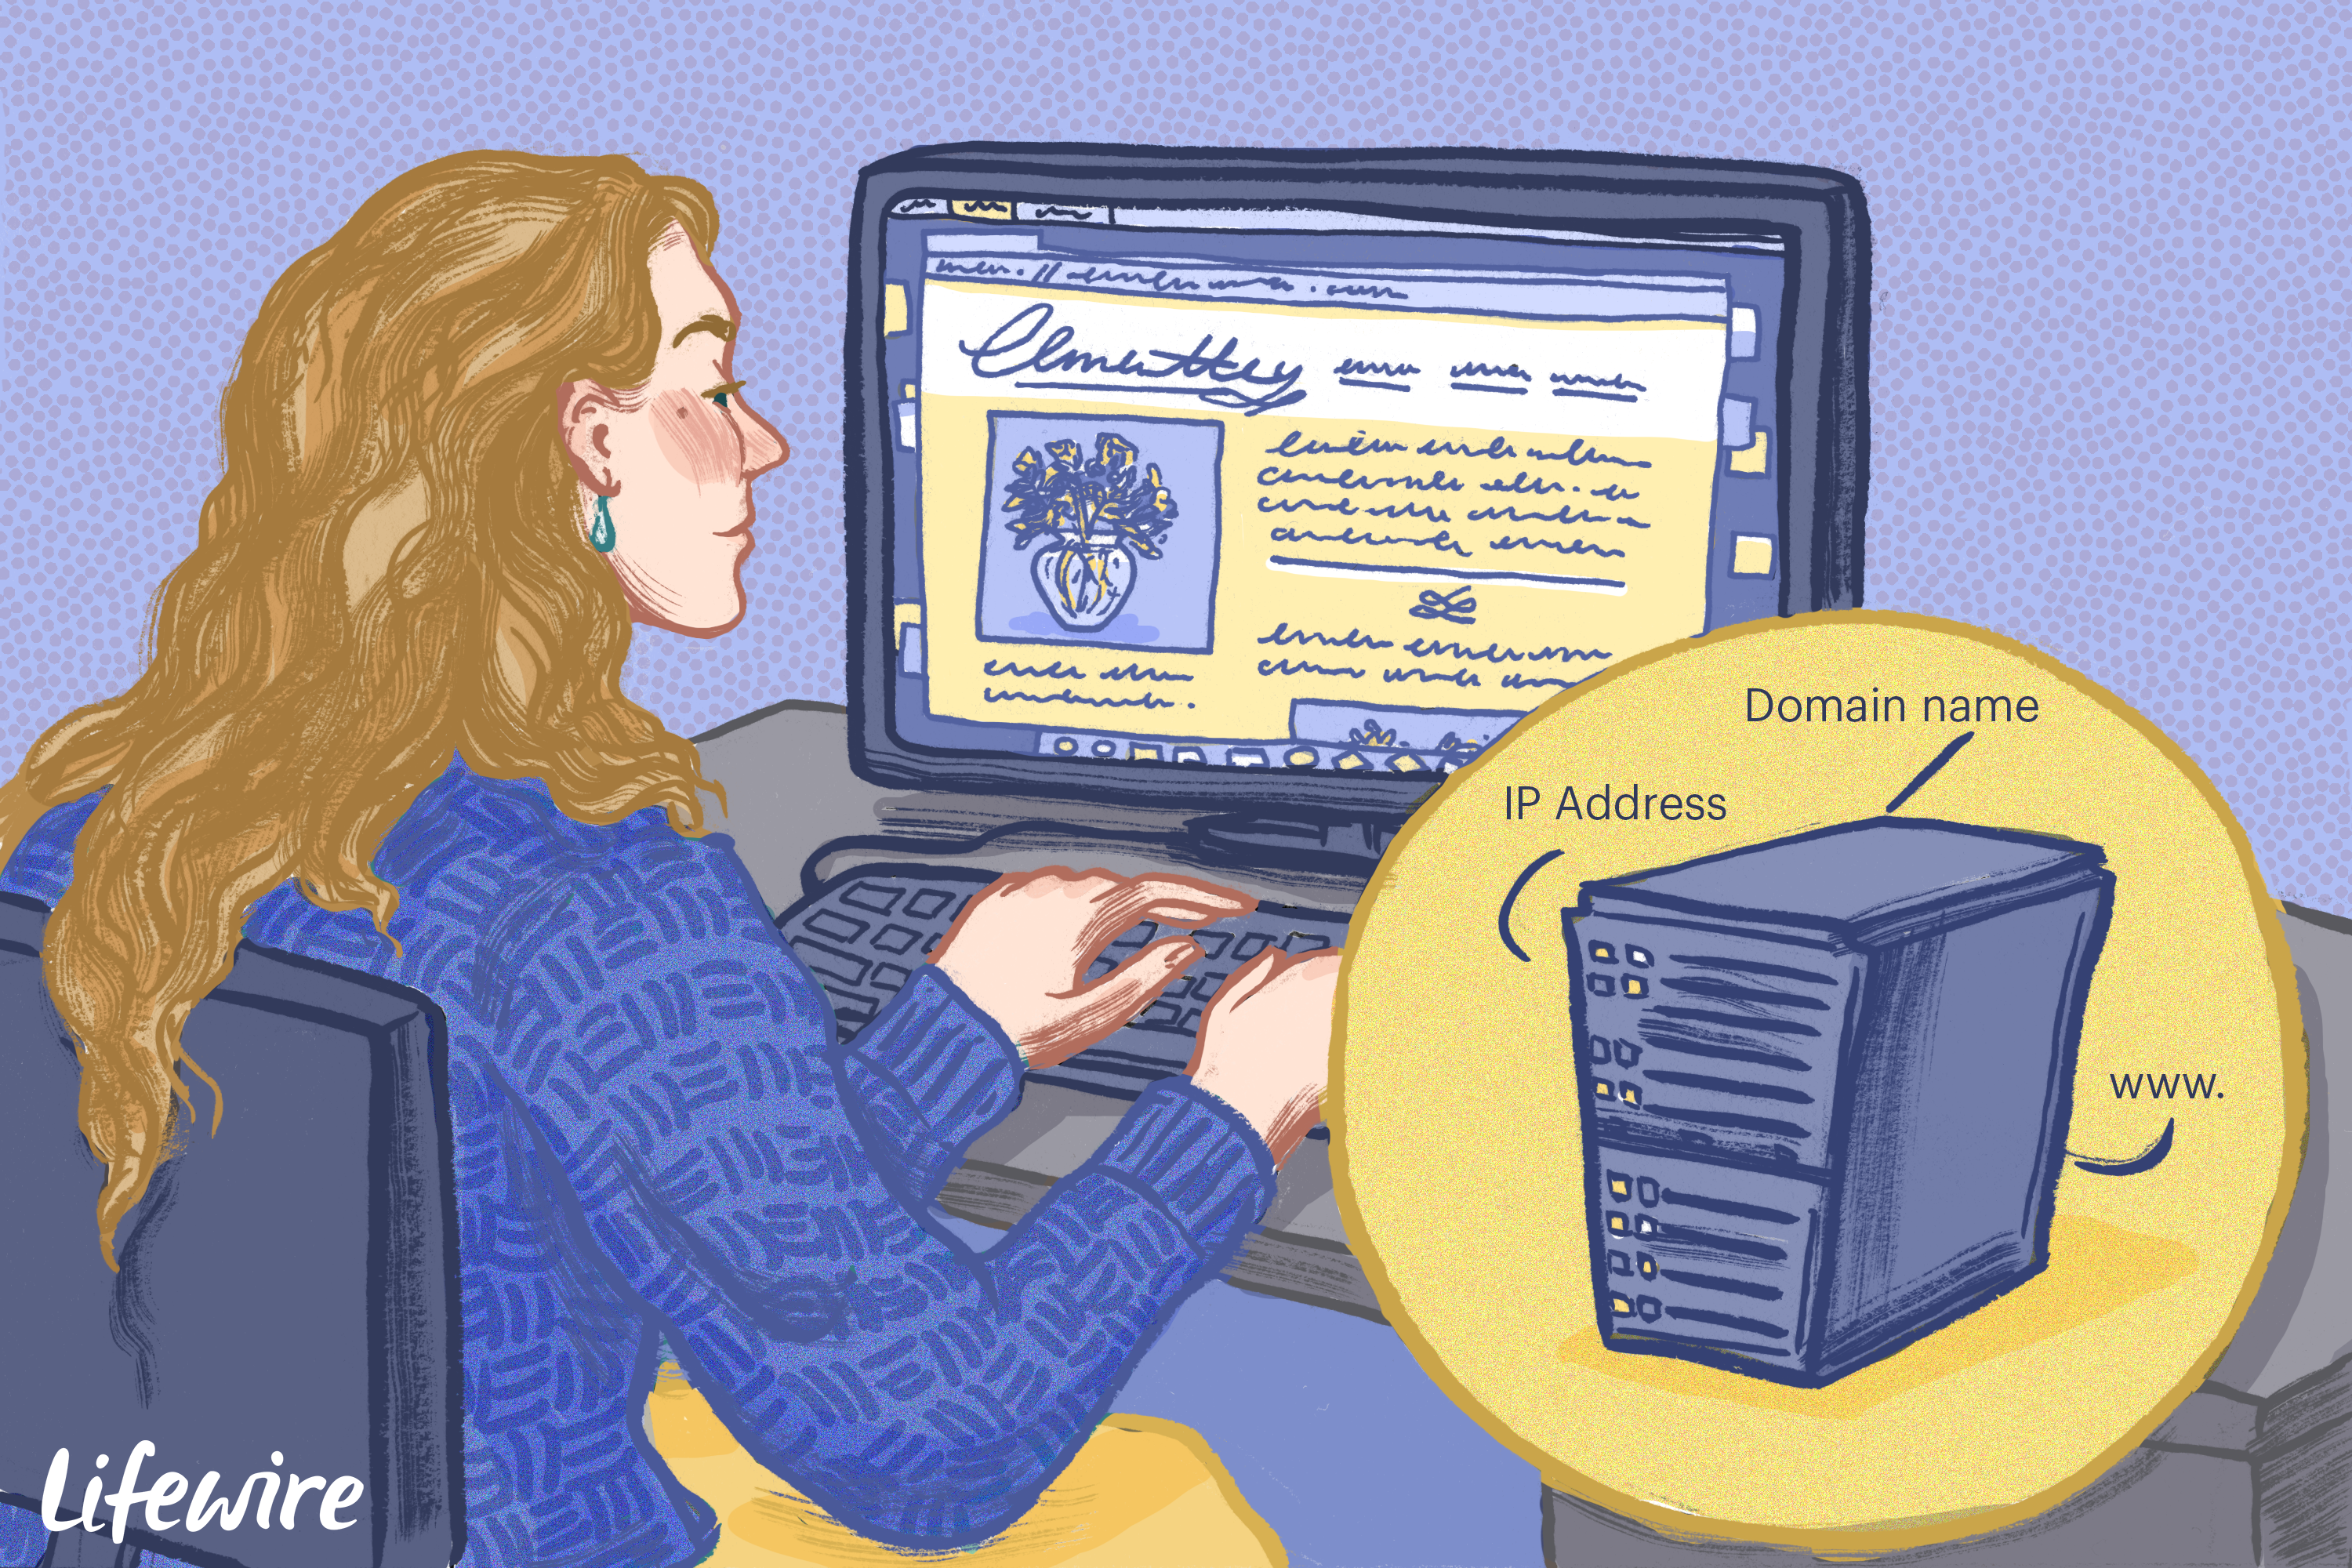 Person using a computer with inset of DNS server illustrated